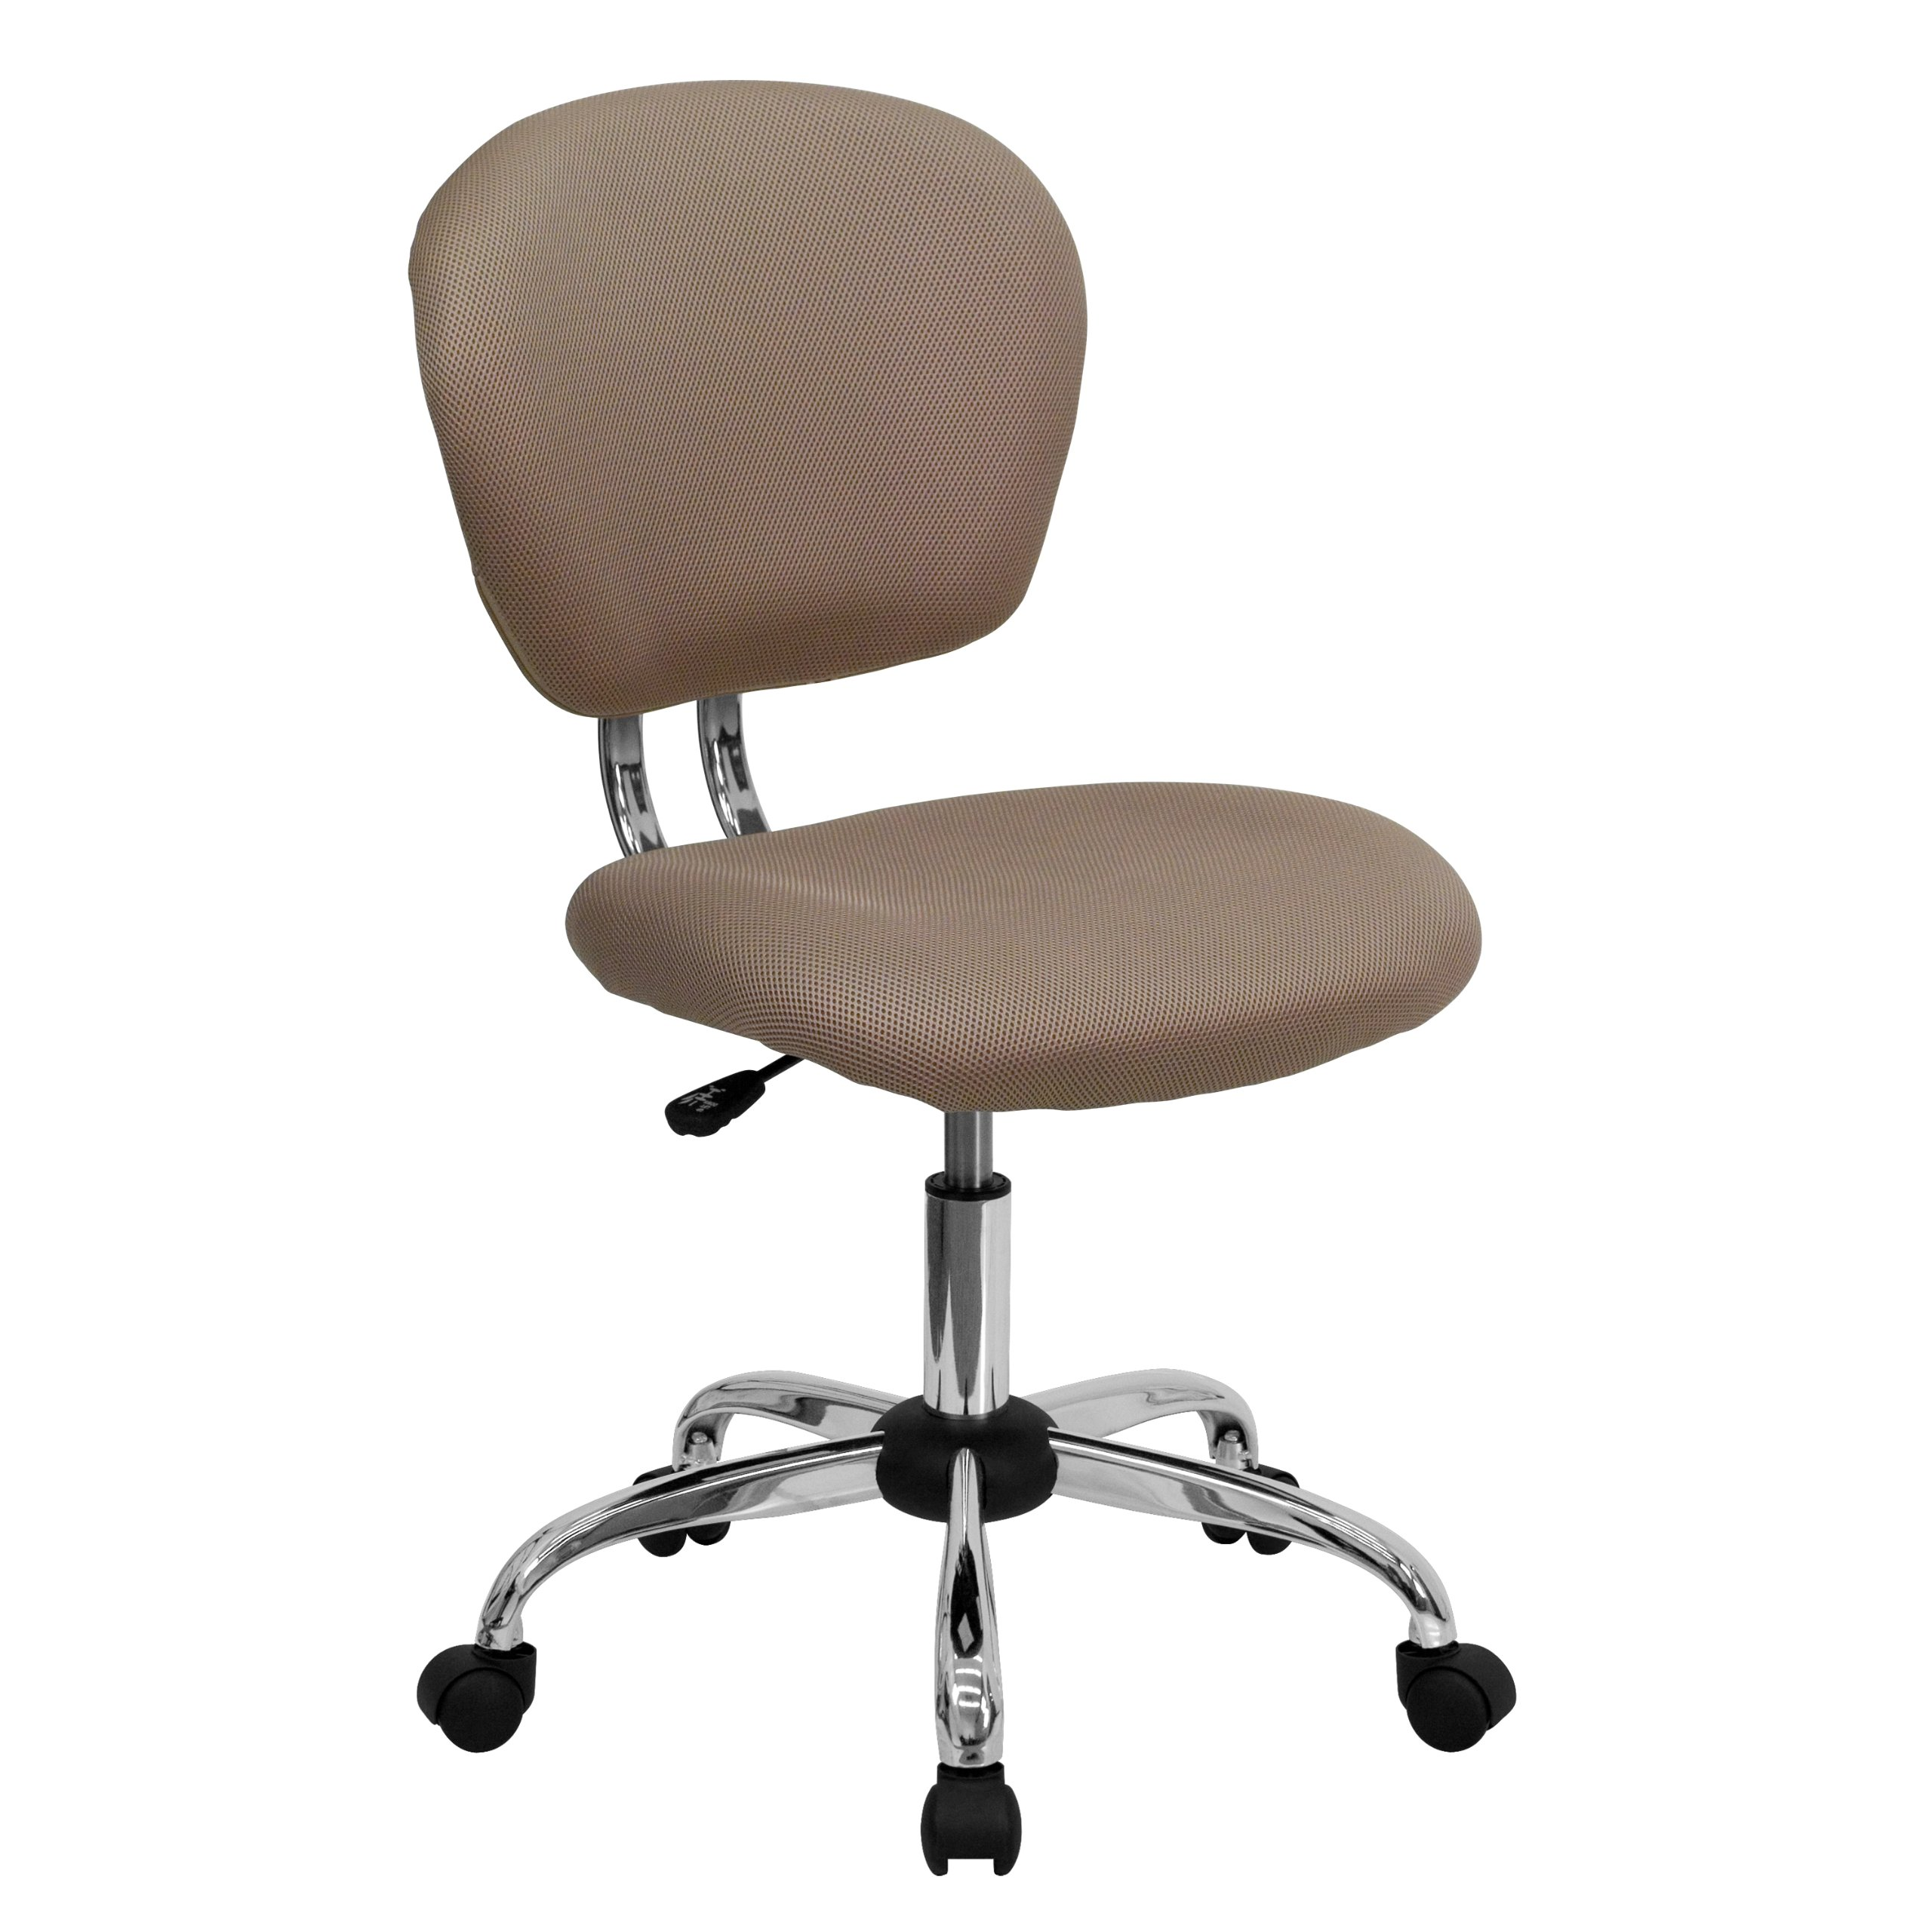 ERGONOMIC HOME MID-Back Coffee Brown MESH Padded Swivel Task Chair with Chrome Base